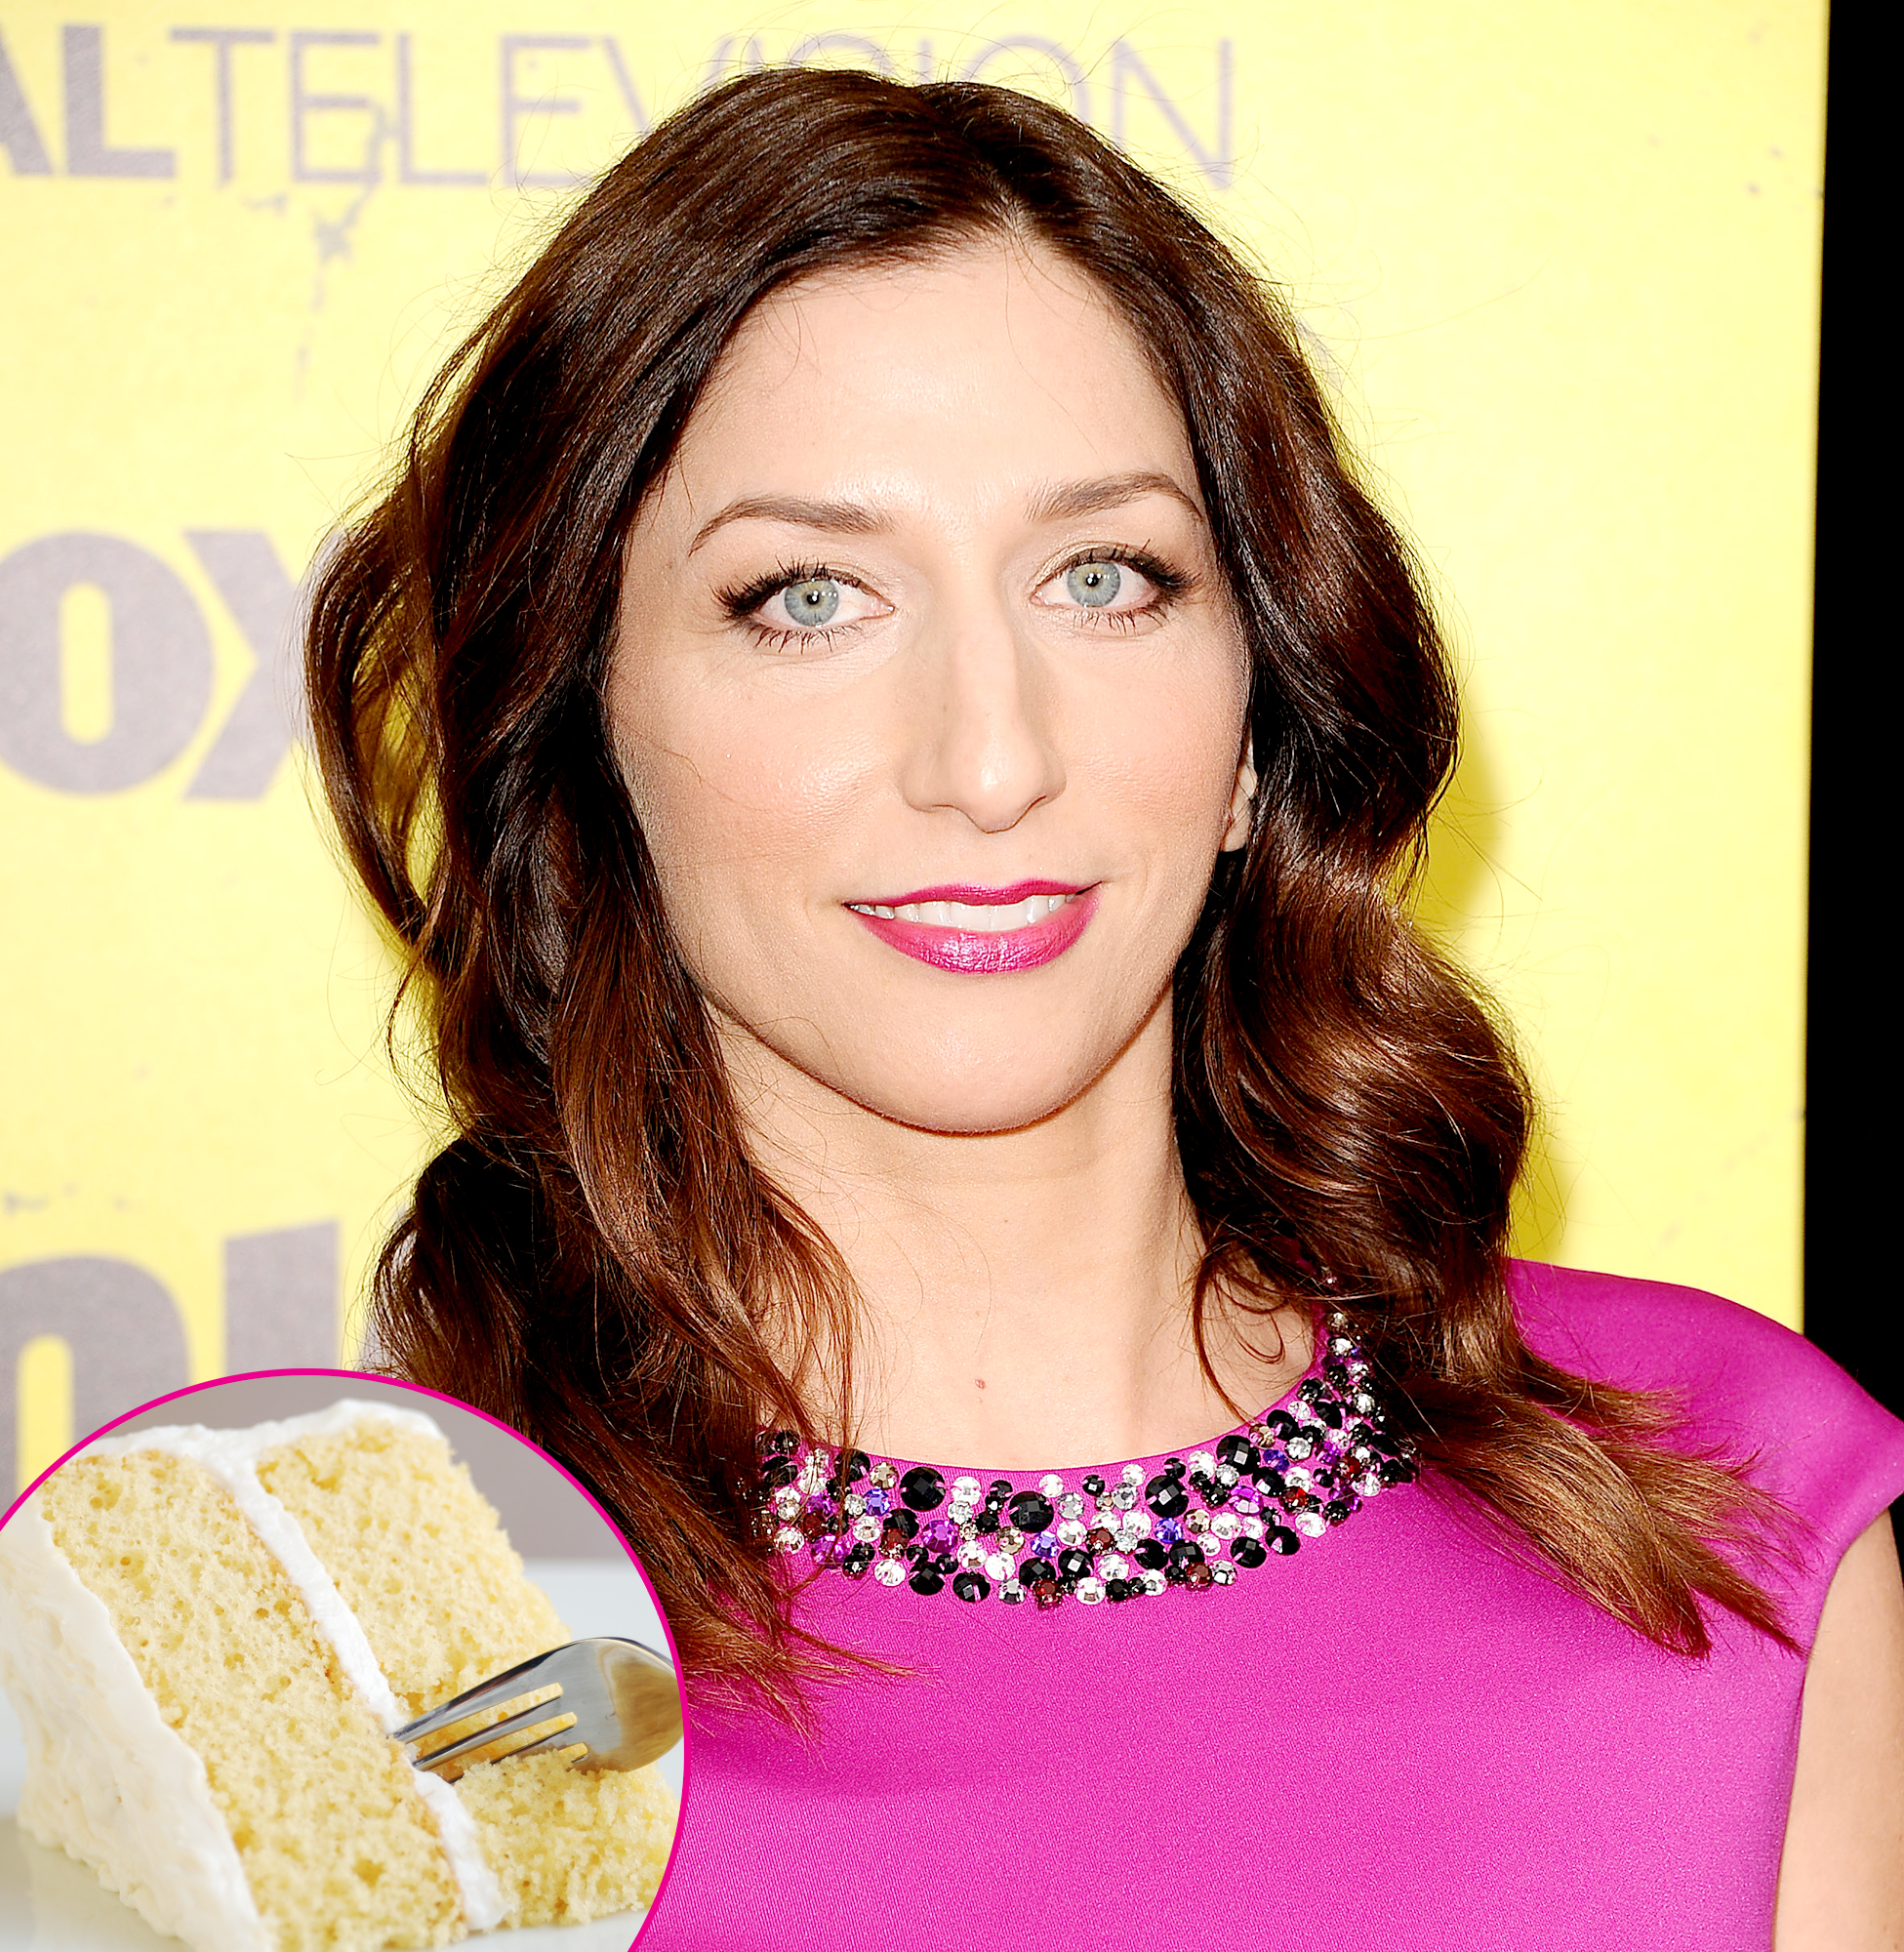 Chelsea-Pereti-Frosting - The Brooklyn Nine-Nine alum made her unusual method of eating cake known when she shared a photo of a dissected sweet treat on Instagram and Twitter in September 2018. The picture showed a piece of the confection with the cake parts eaten and only the frosting strategically left behind .